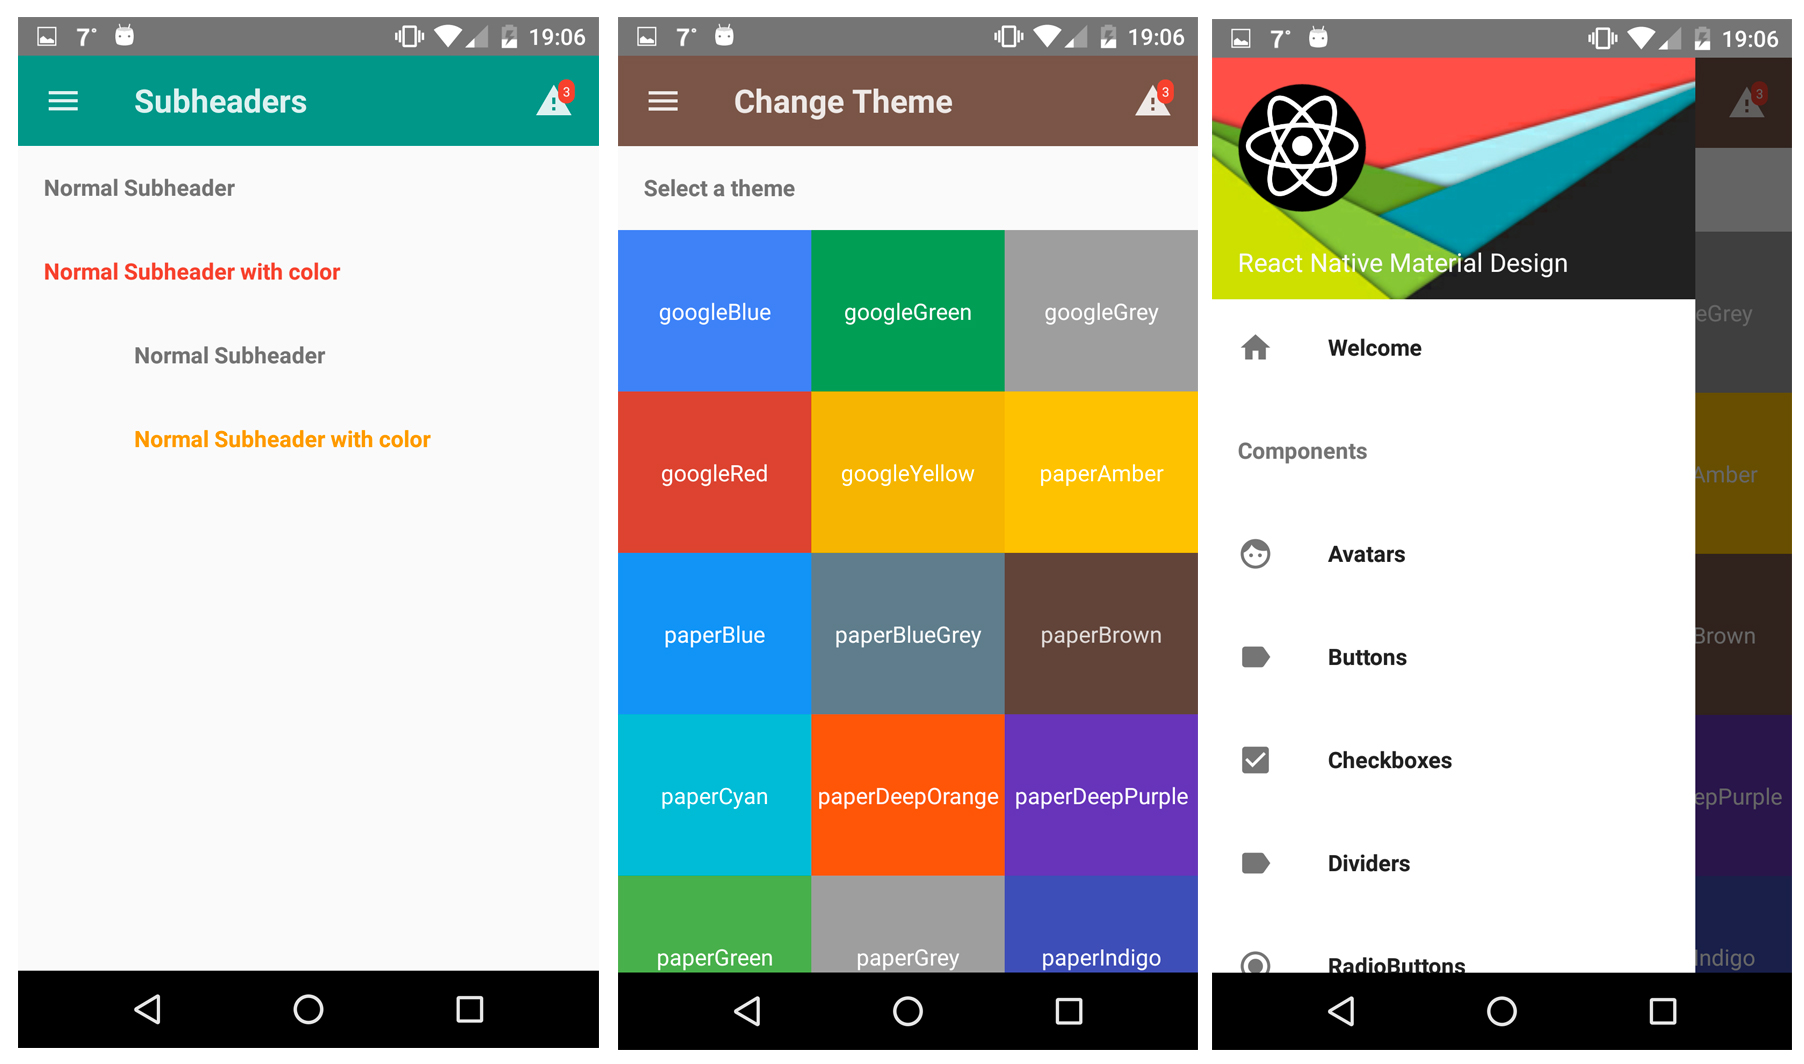 React Native Material Design